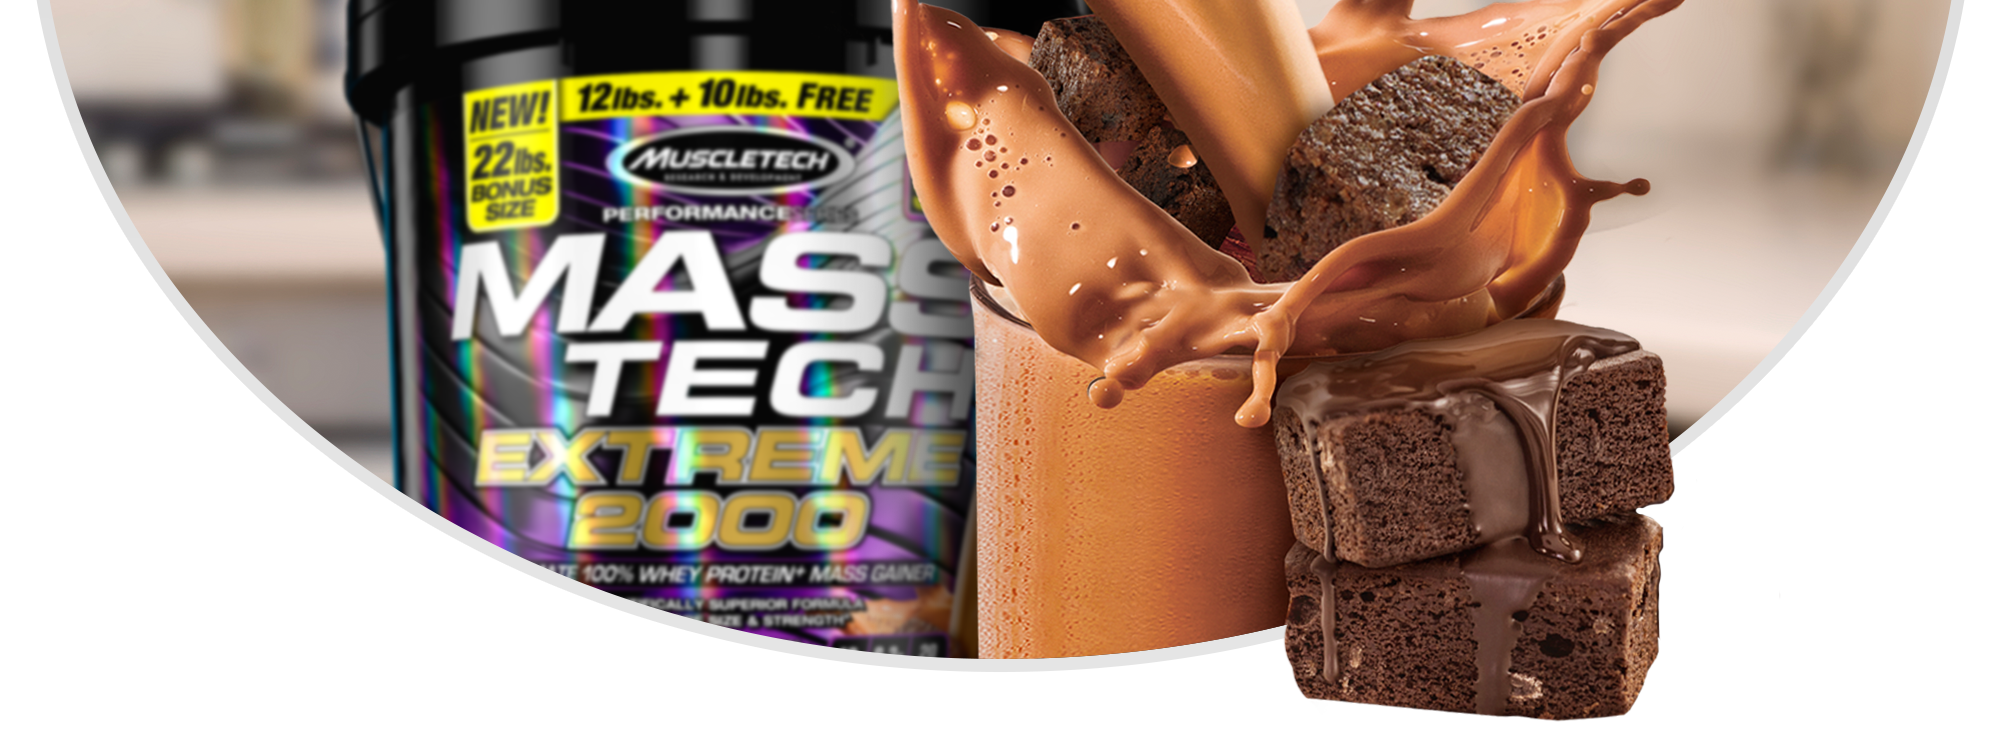 Mass-Tech Extreme 2000 - Best-In-Class